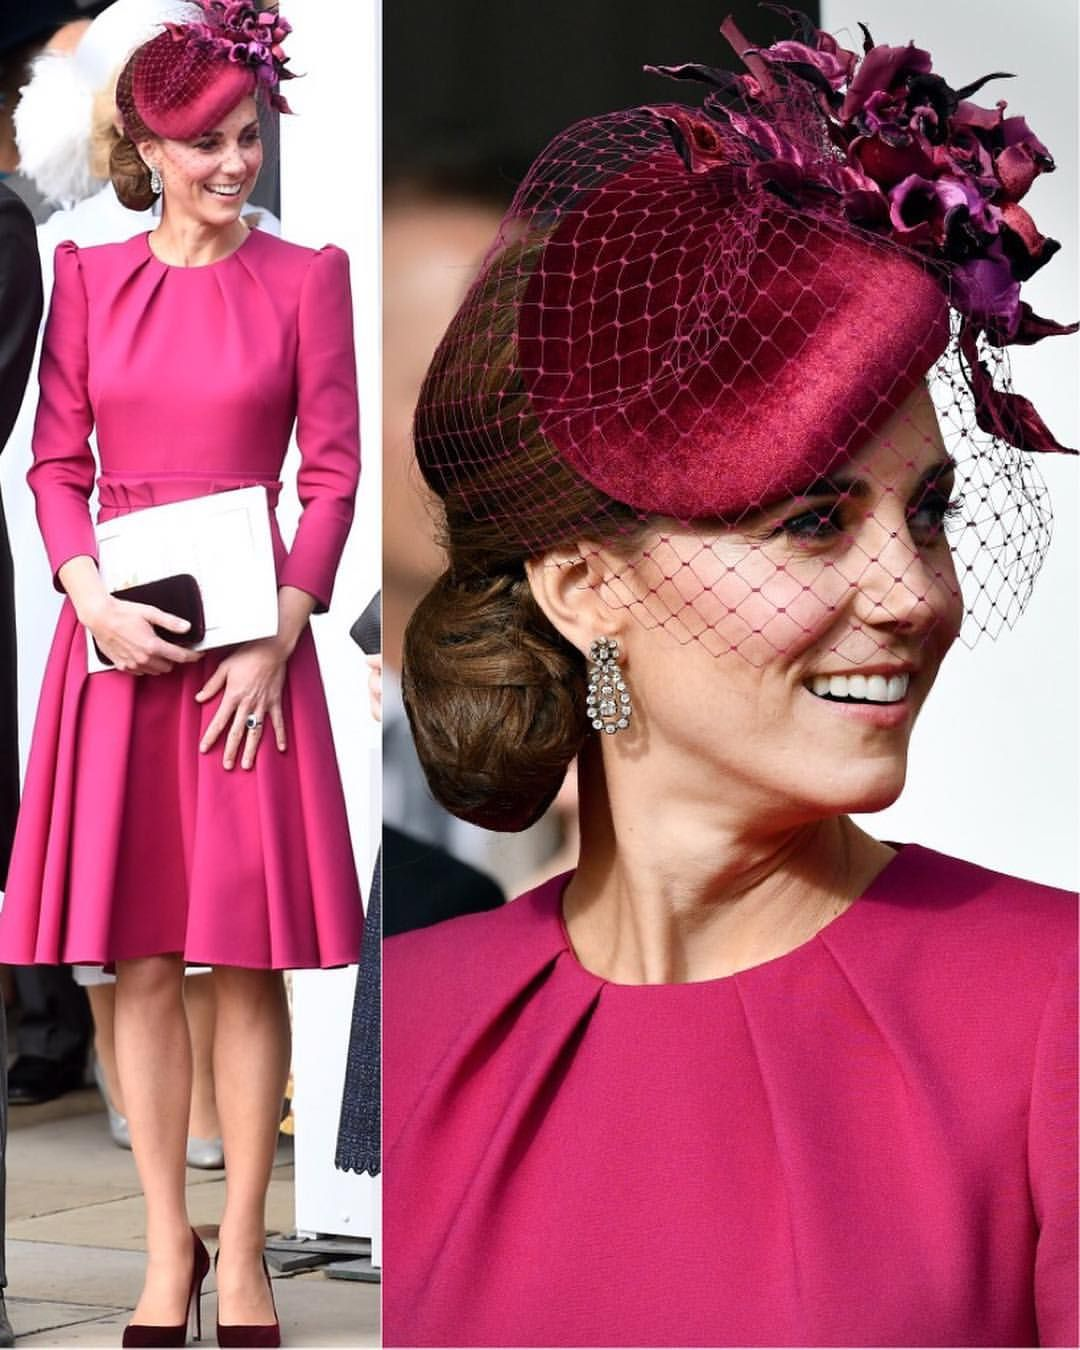 Wedding decorations red and black october 2018 New  The Duchess of Cambridge at todayus wedding of Princess